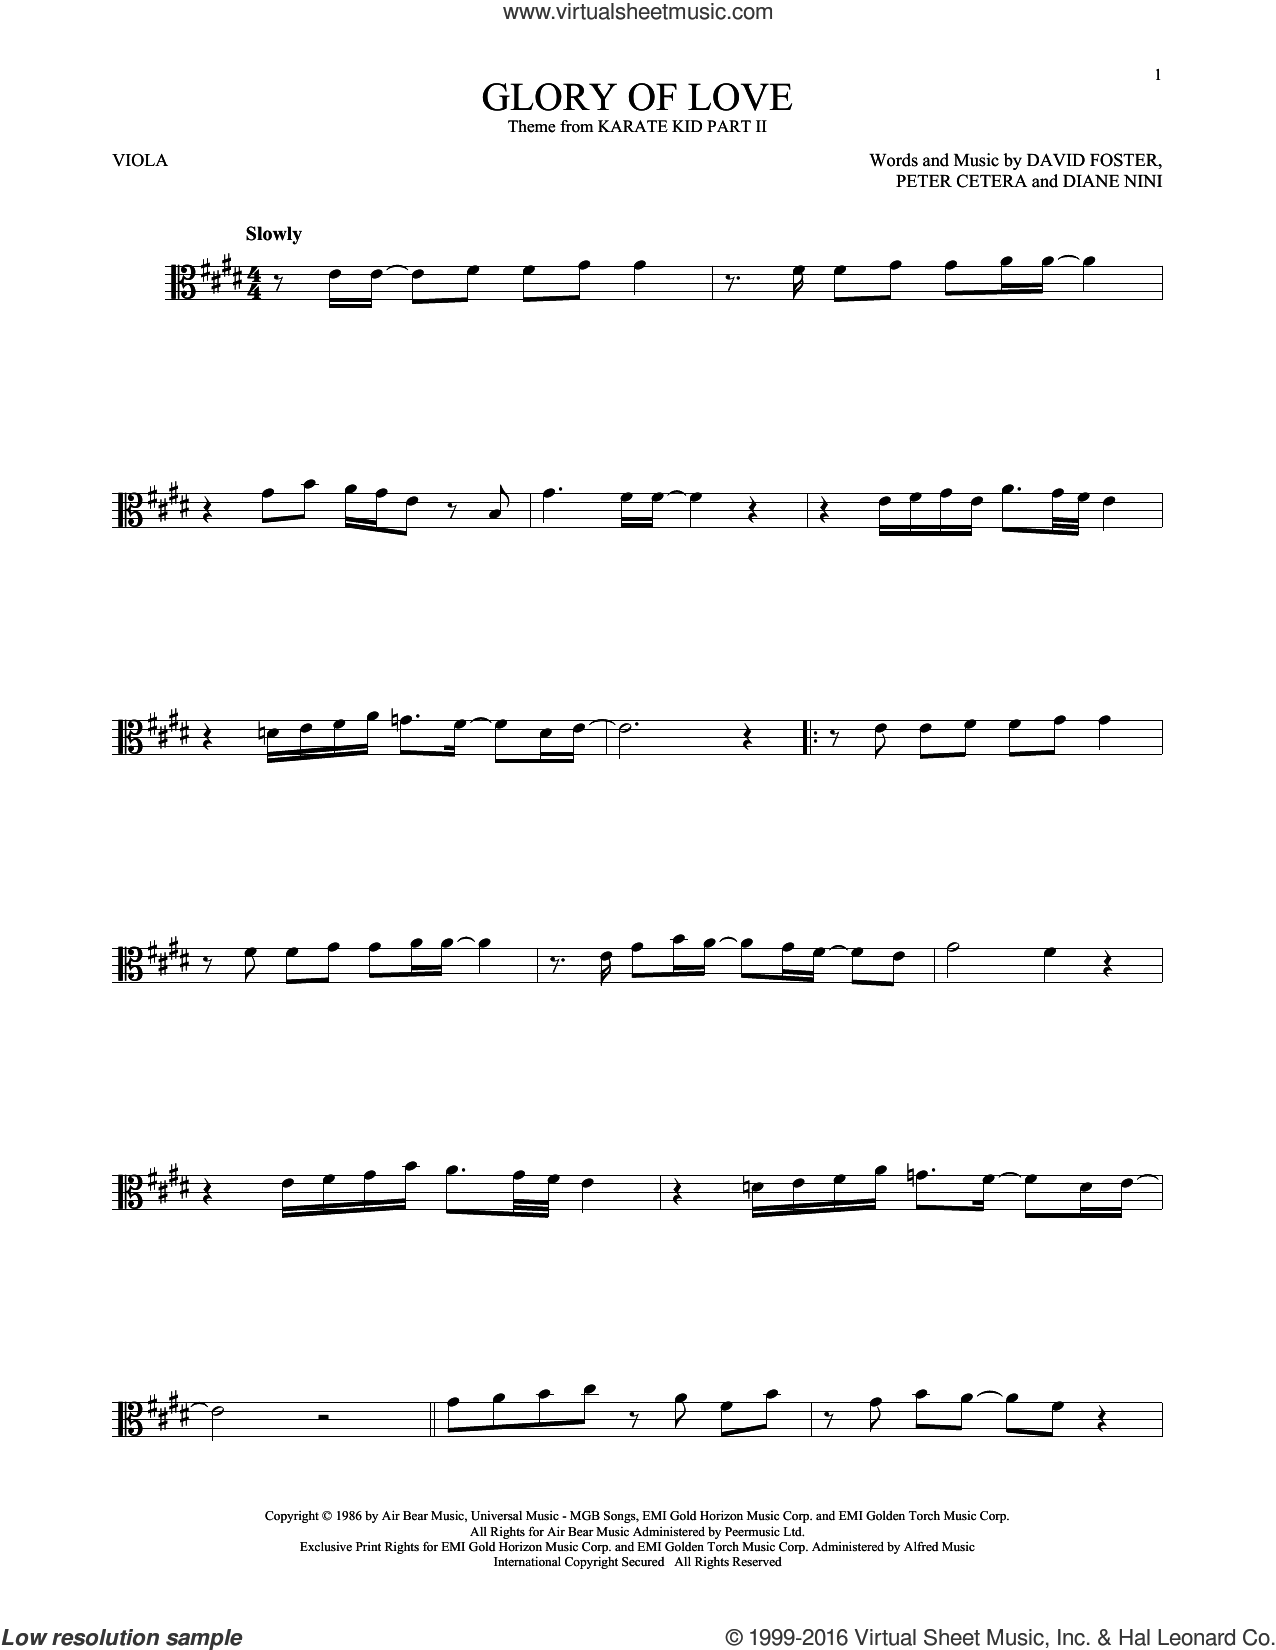 Glory Of Love sheet music for viola solo by Peter Cetera, David Foster and Diane Nini, intermediate